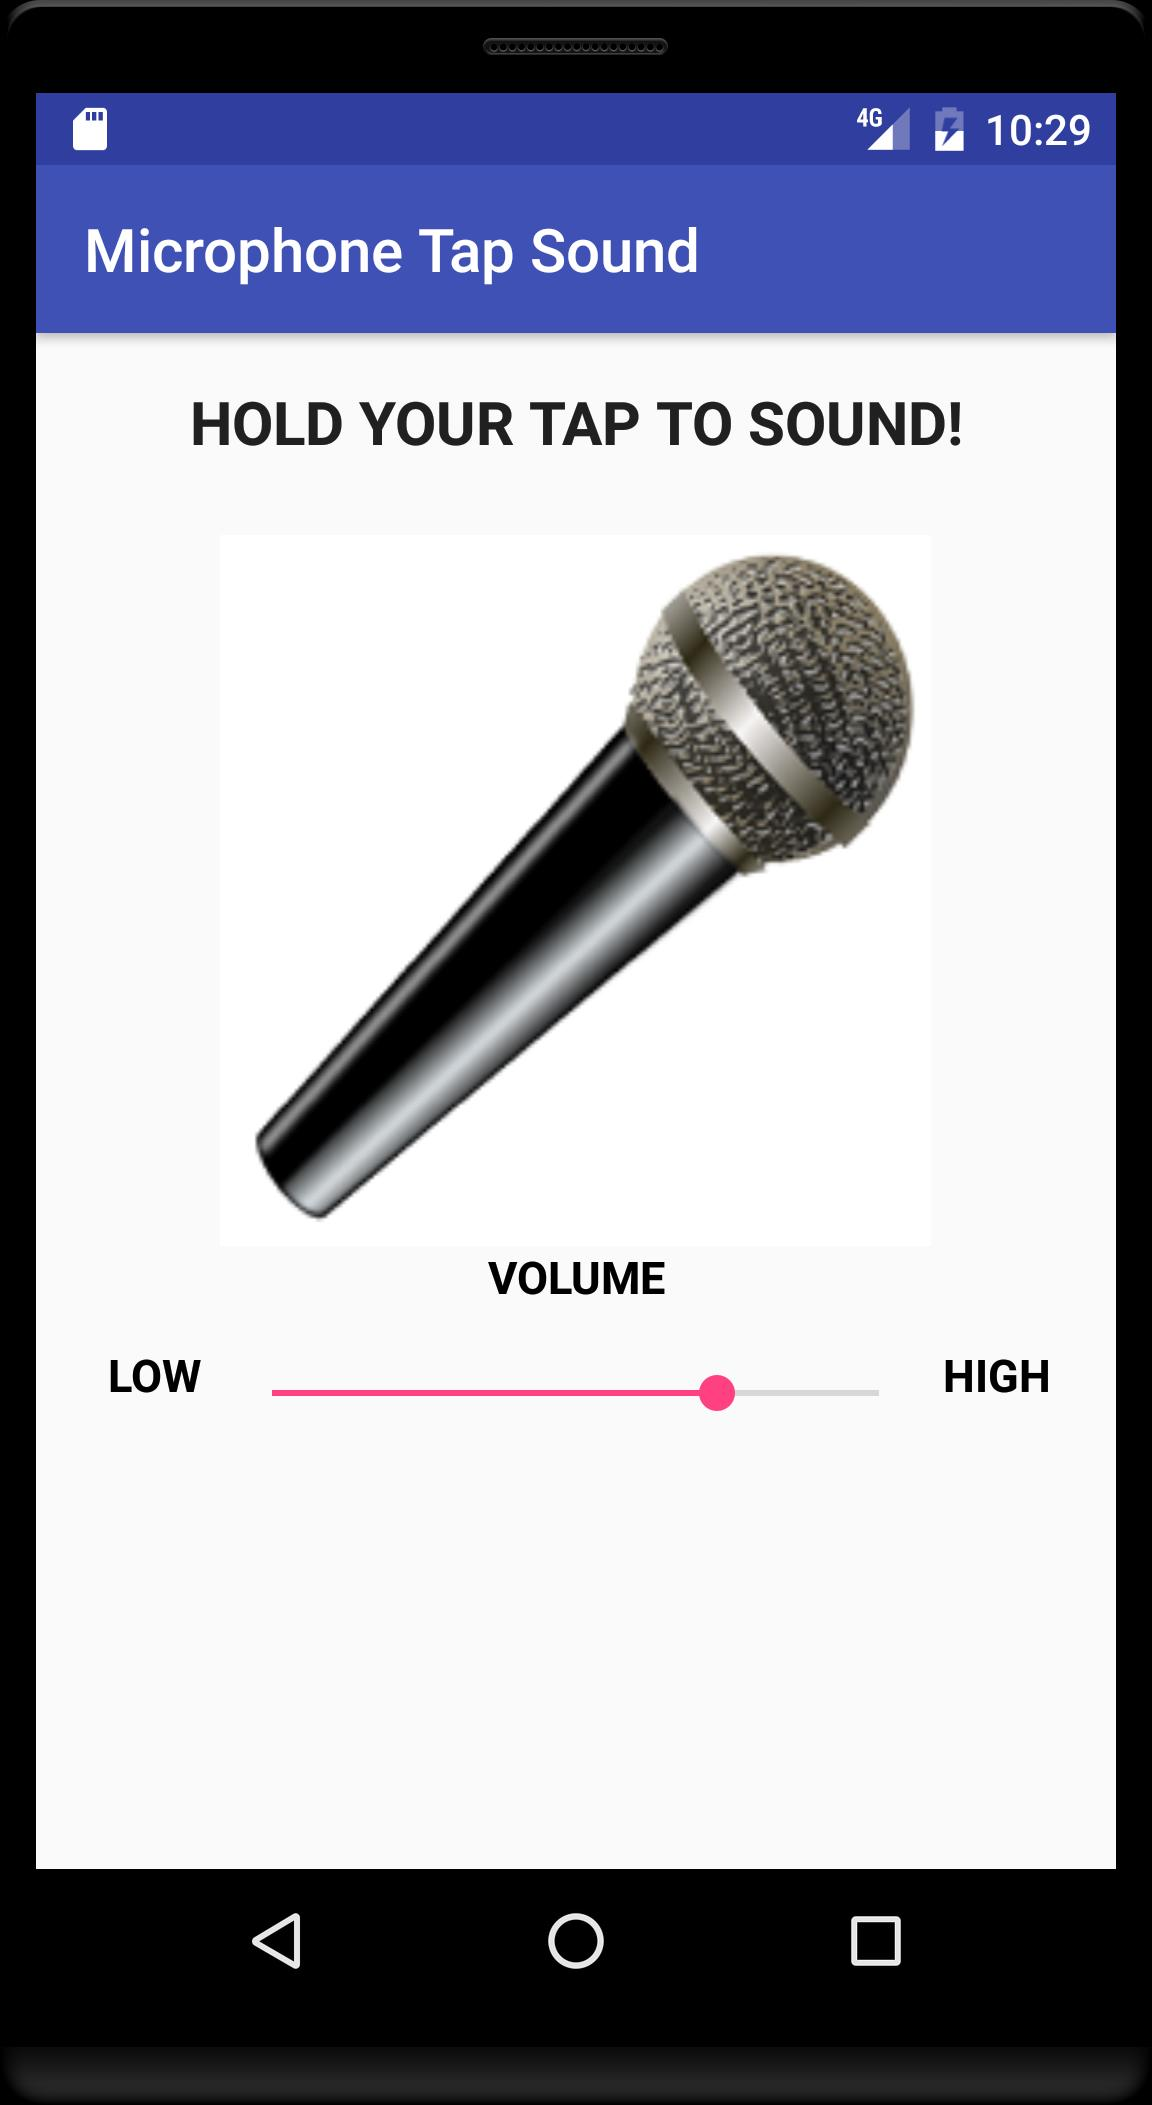 Microphone Tap Sound for Android - APK Download